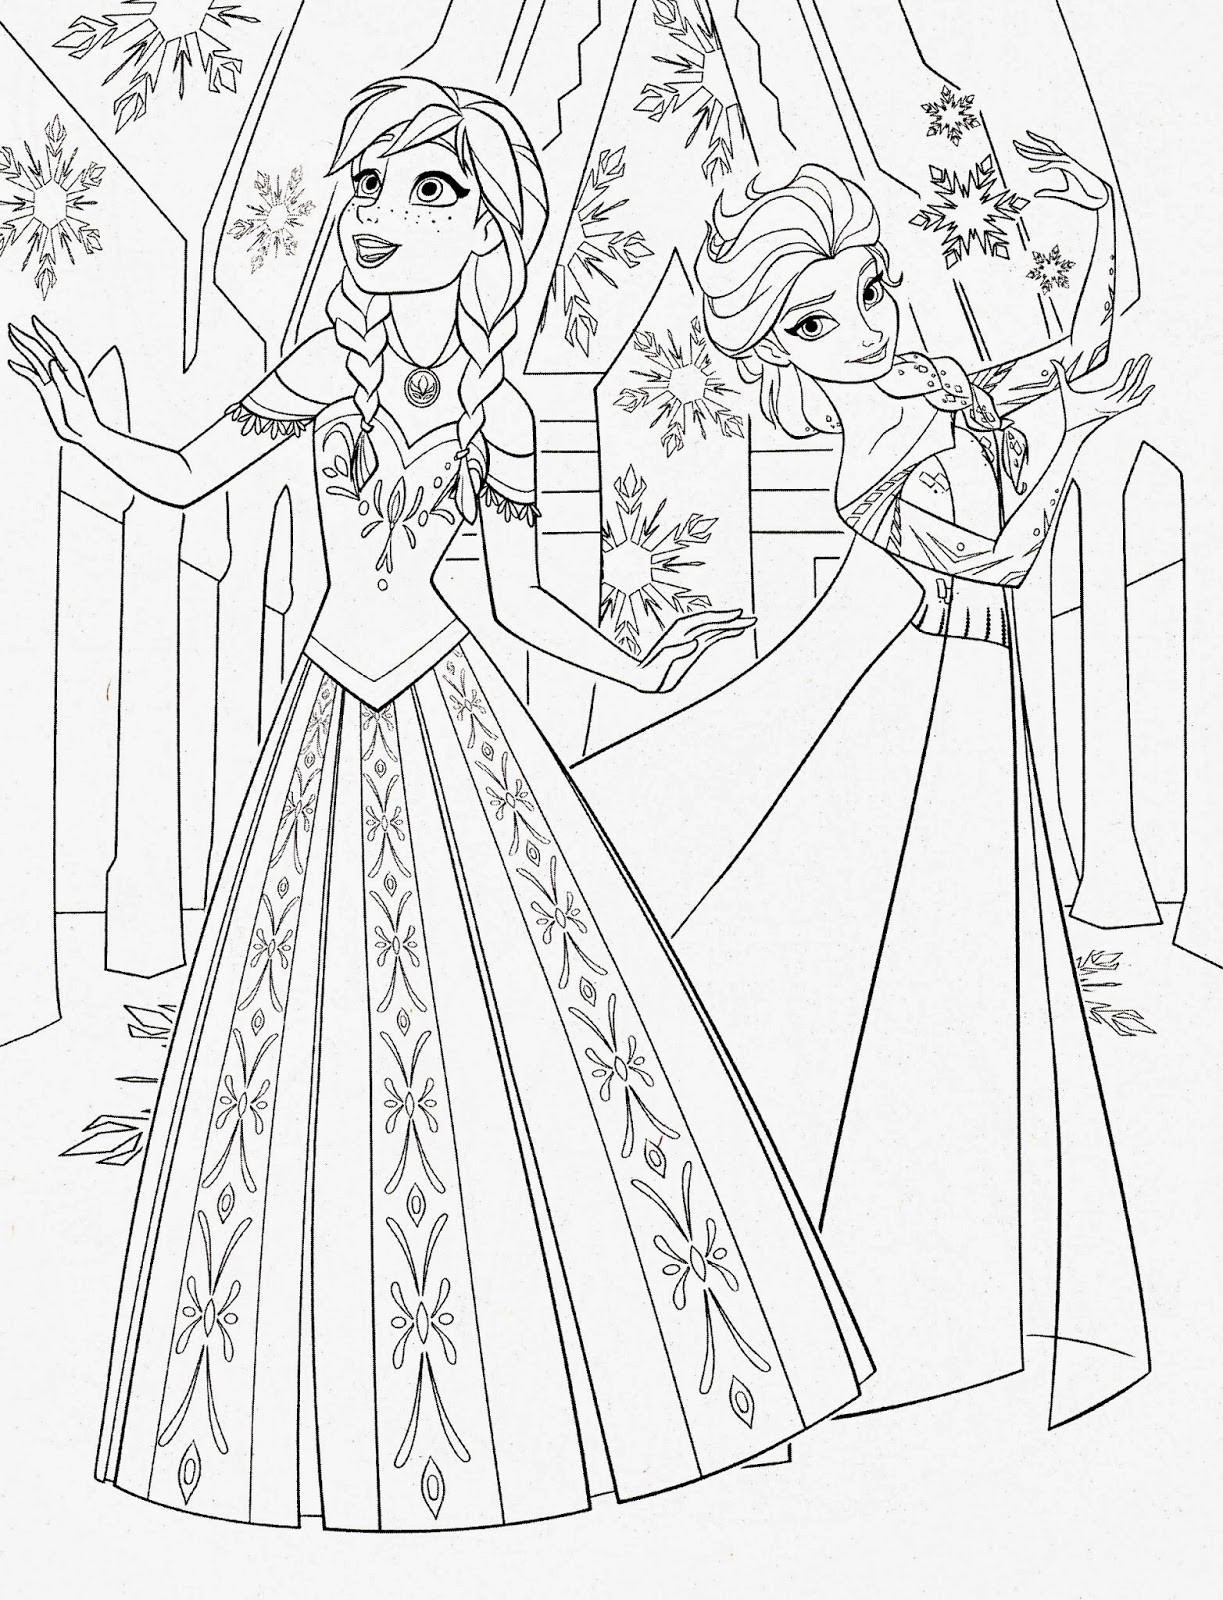 frozen drawings to color coloring pages frozen coloring pages free and printable to frozen color drawings